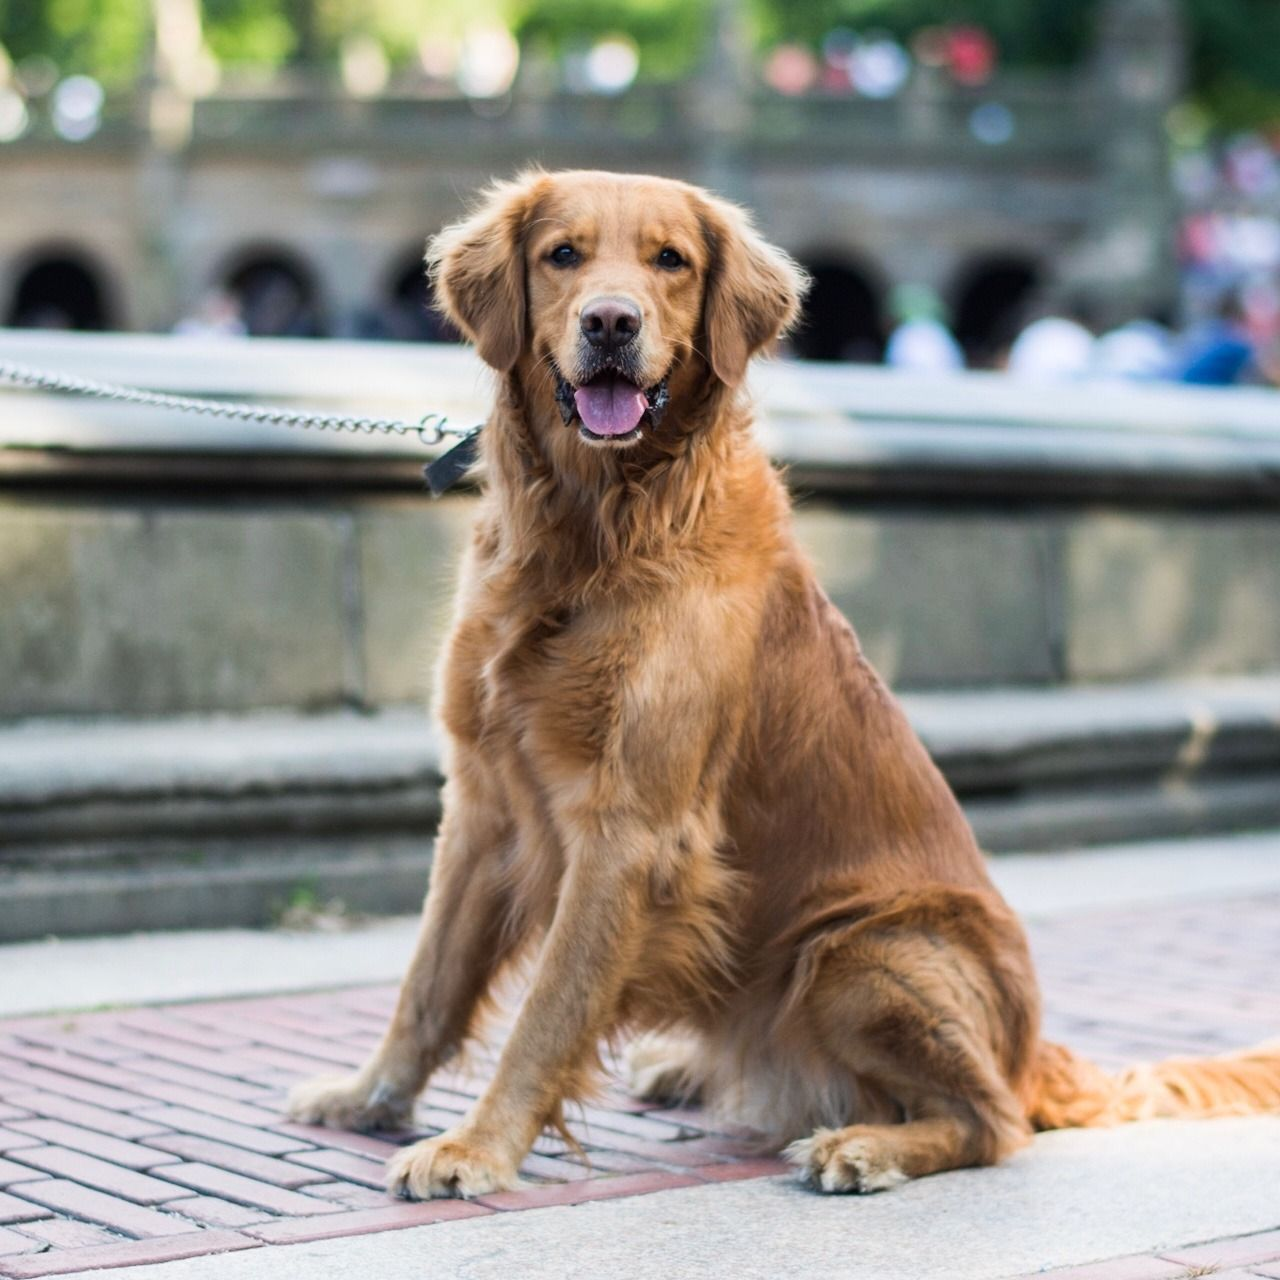 George Golden Retriever 3 Y X2f O Central Park New York Ny He Doesn T Know His Name At Three Years Old It S Quite Unfortunate His Hearing